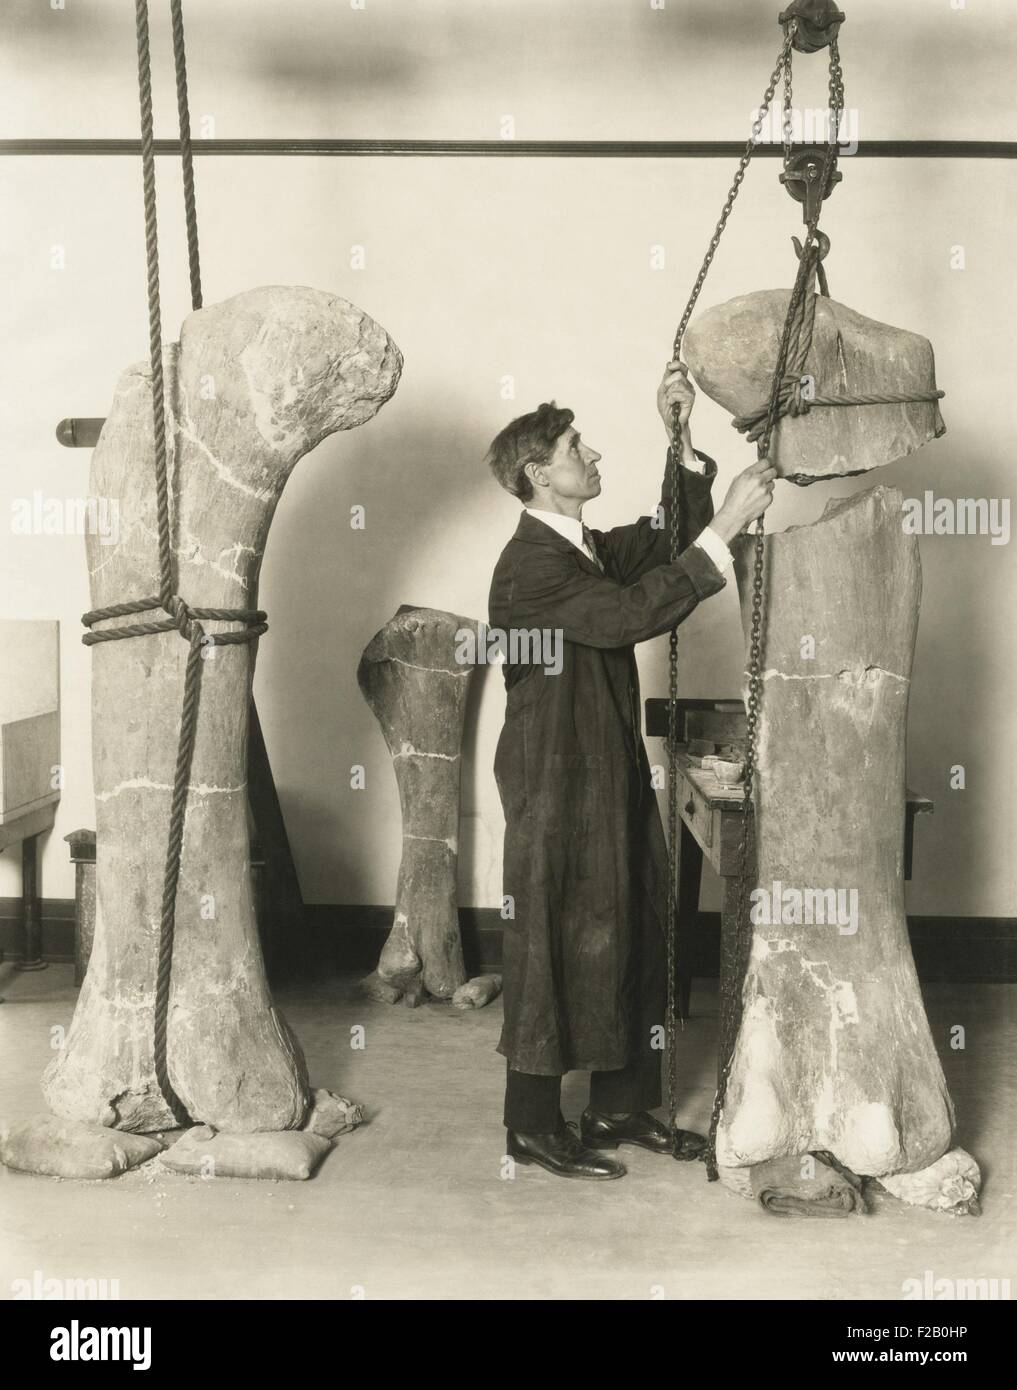 Dr. J. B. Abbott, prepared fossils of dinosaurs thigh bones for public display at the Field Museum. The specimens - Stock Image